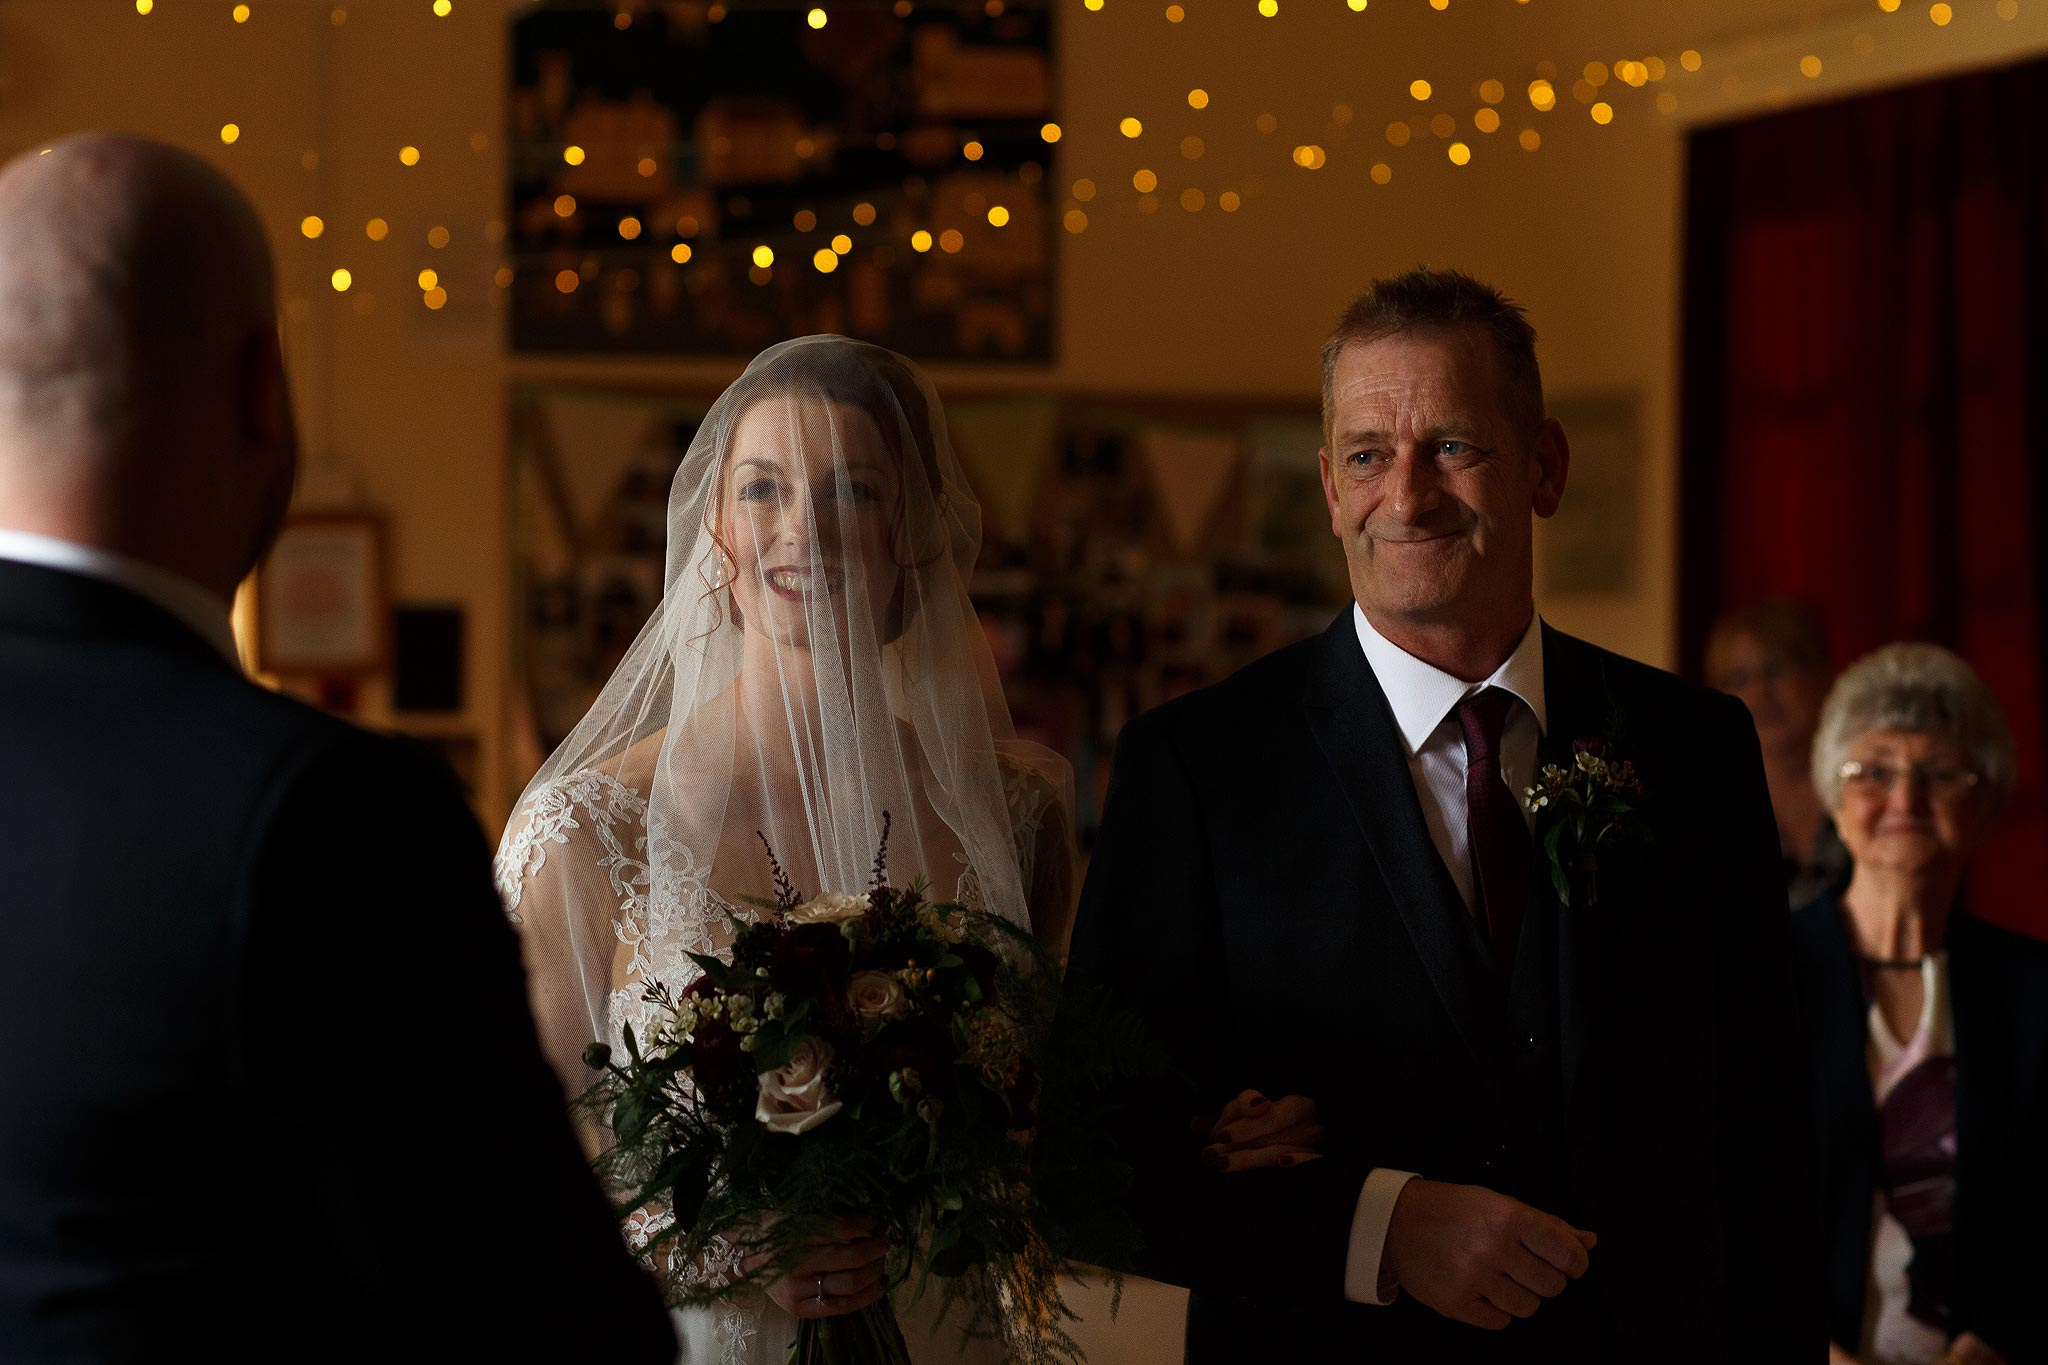 Bride looking emotional walking down the aisle with her veil over the face